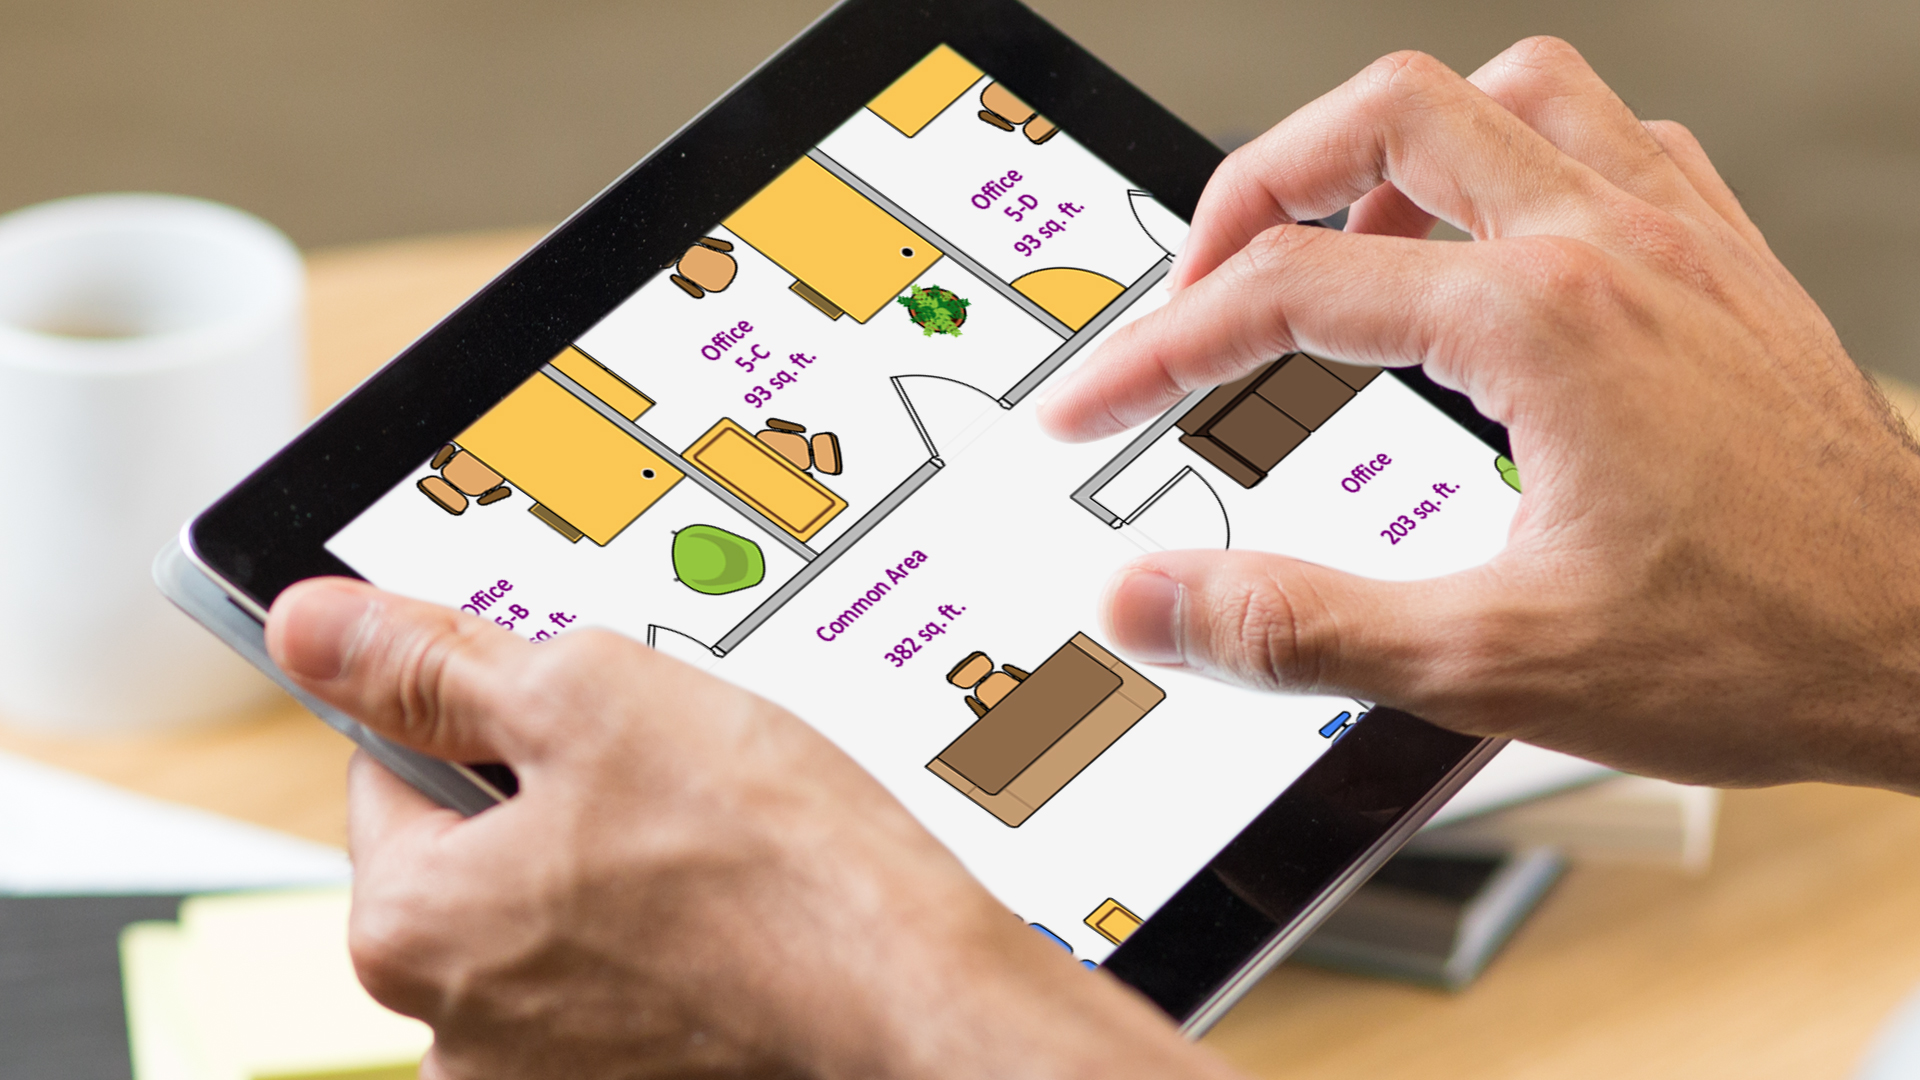 visio on mobile and visio online first look - View Visio Online